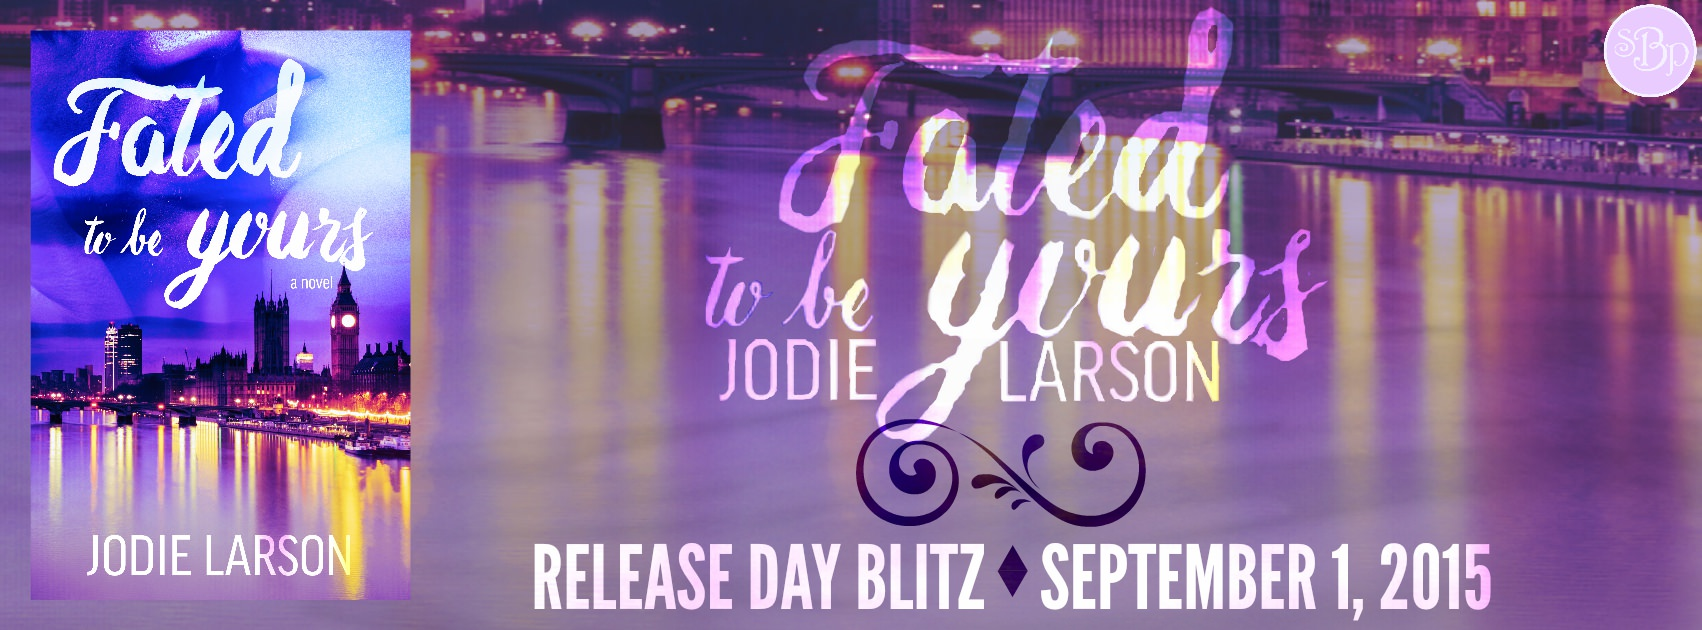 Release Day for Fated to be Yours by Jodie Larson